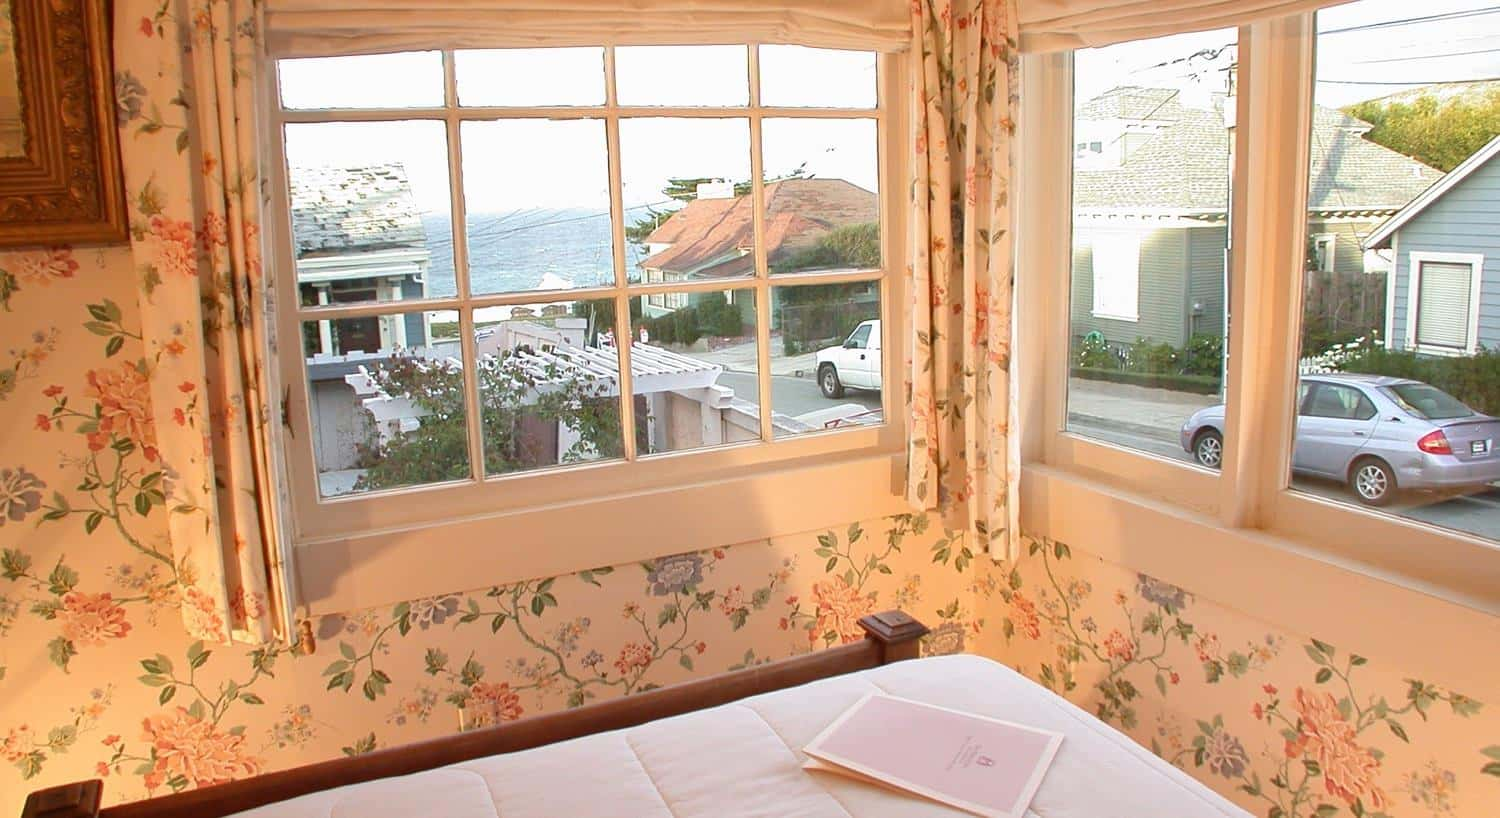 Cottage guest room with corner windows, ocean views, and floral walls